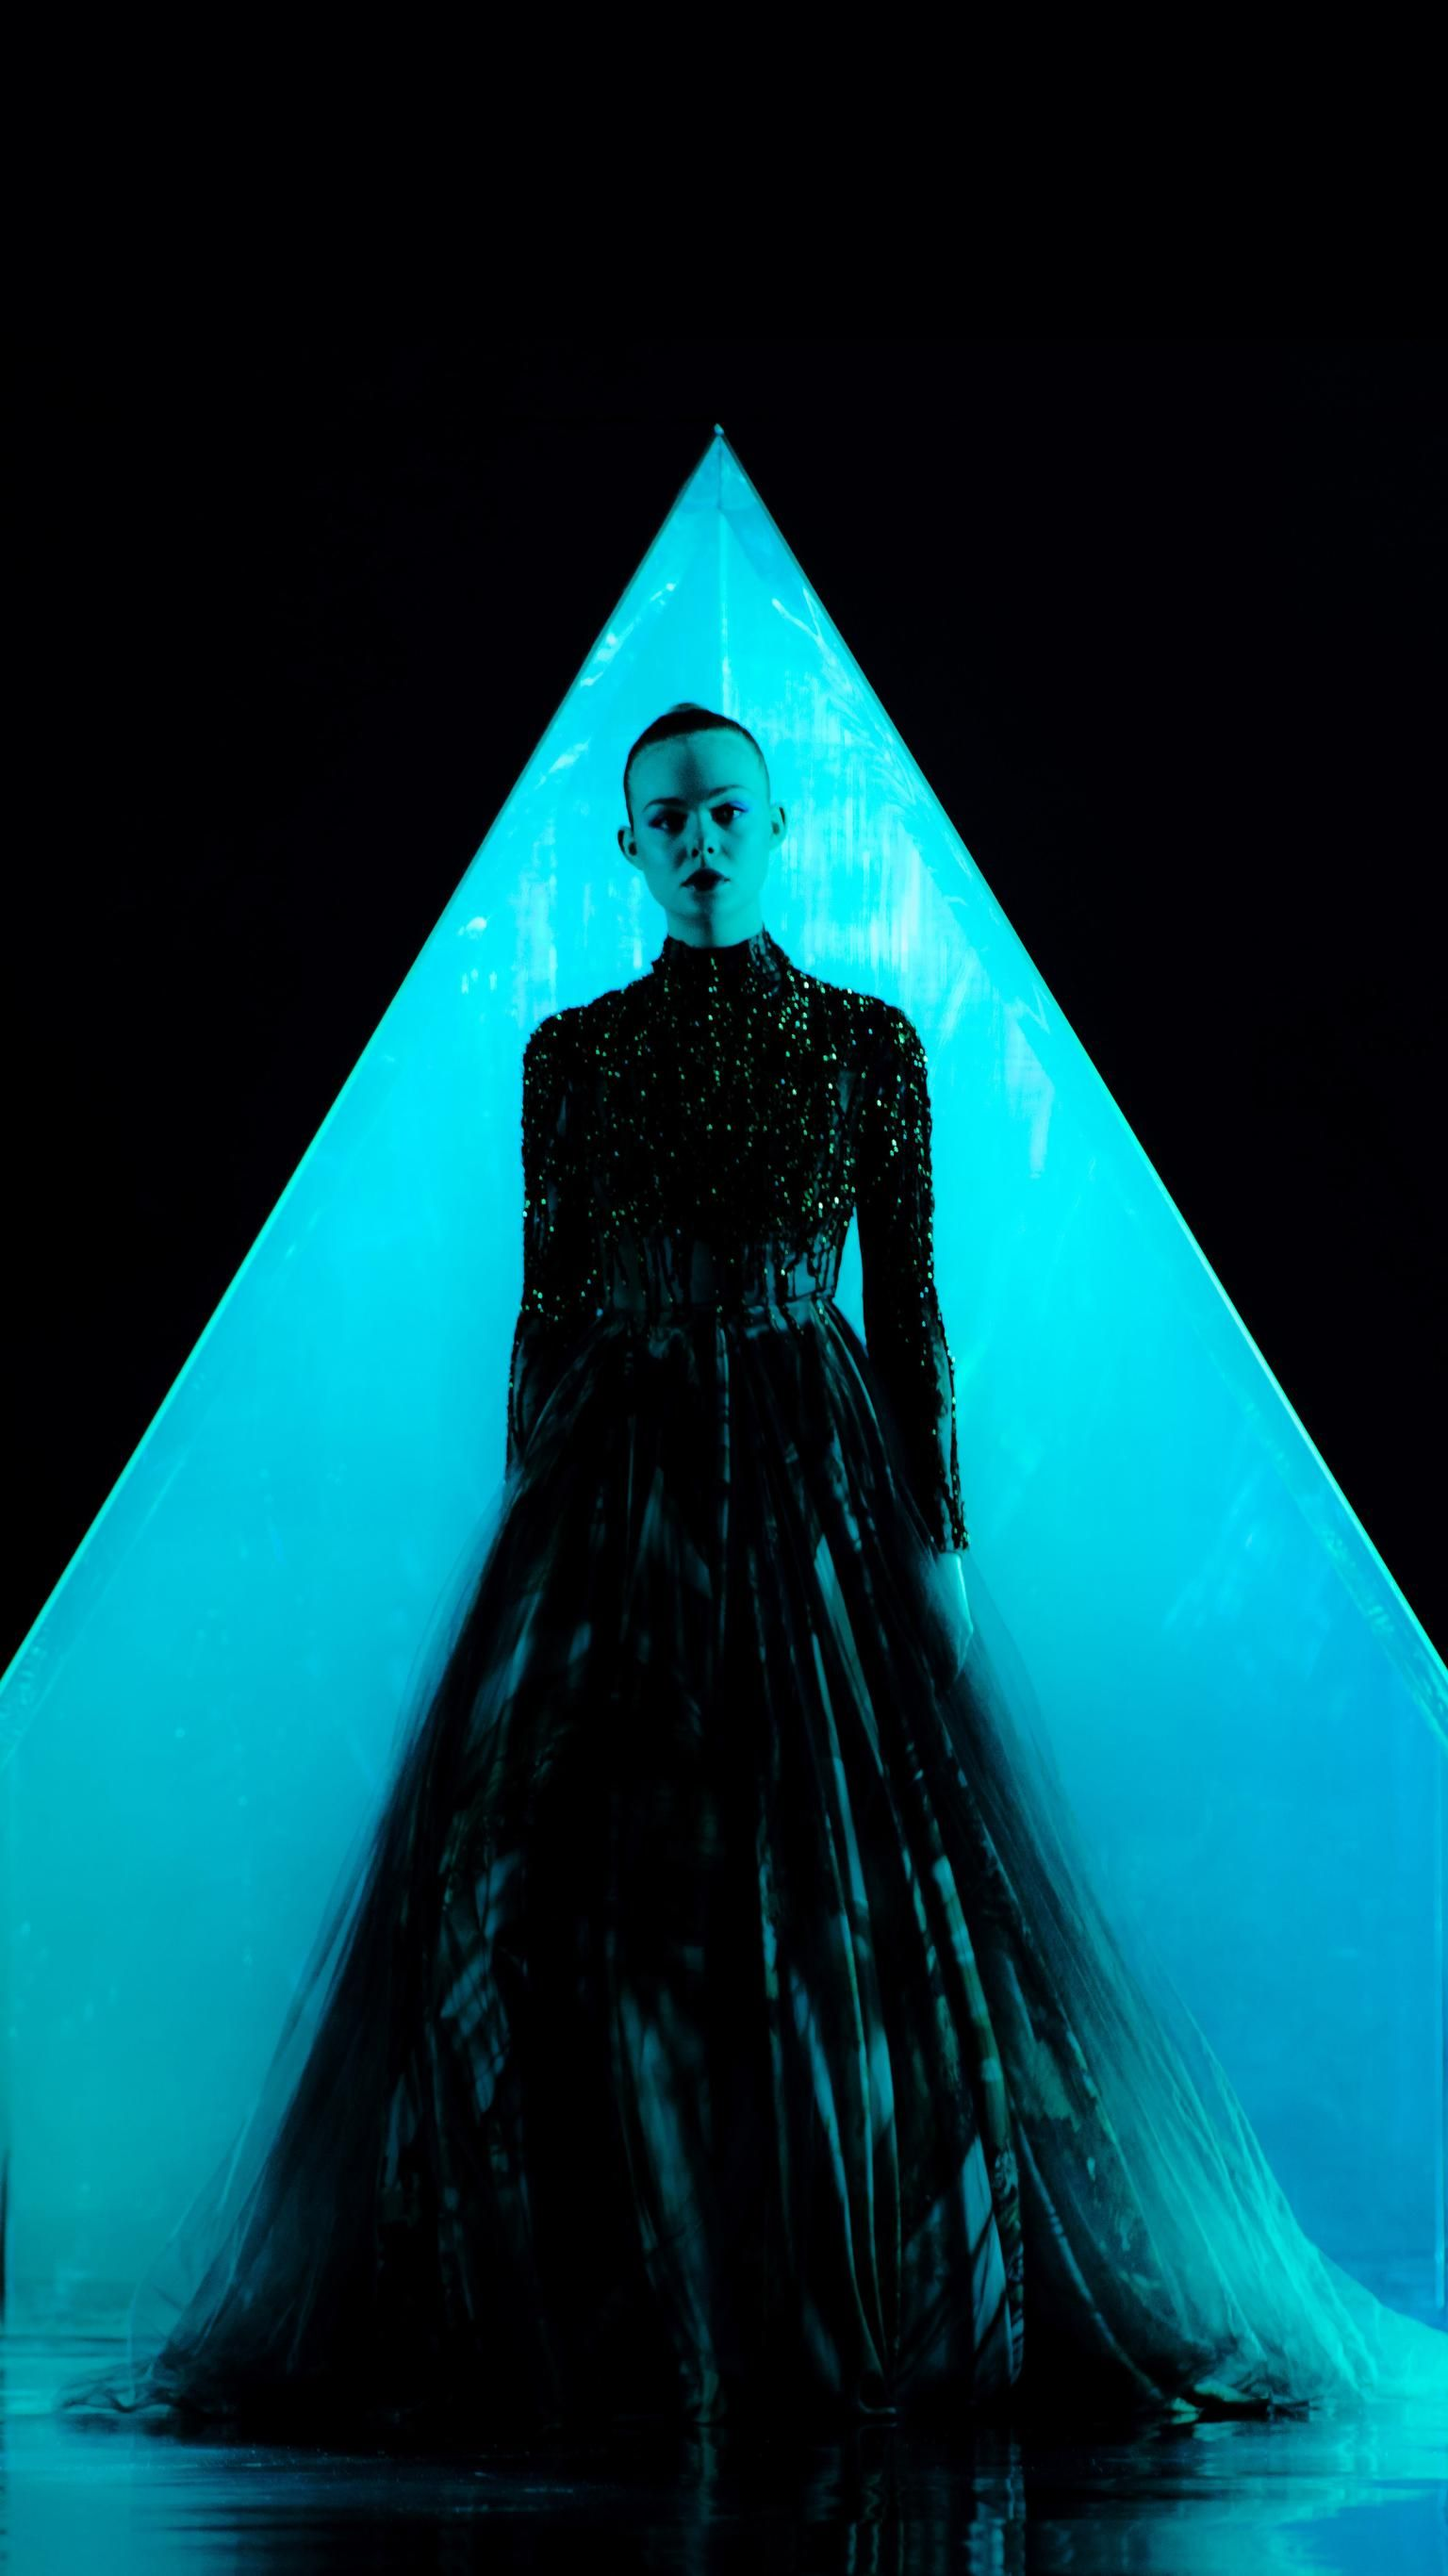 The Neon Demon (2016) Phone Wallpaper (With images) The